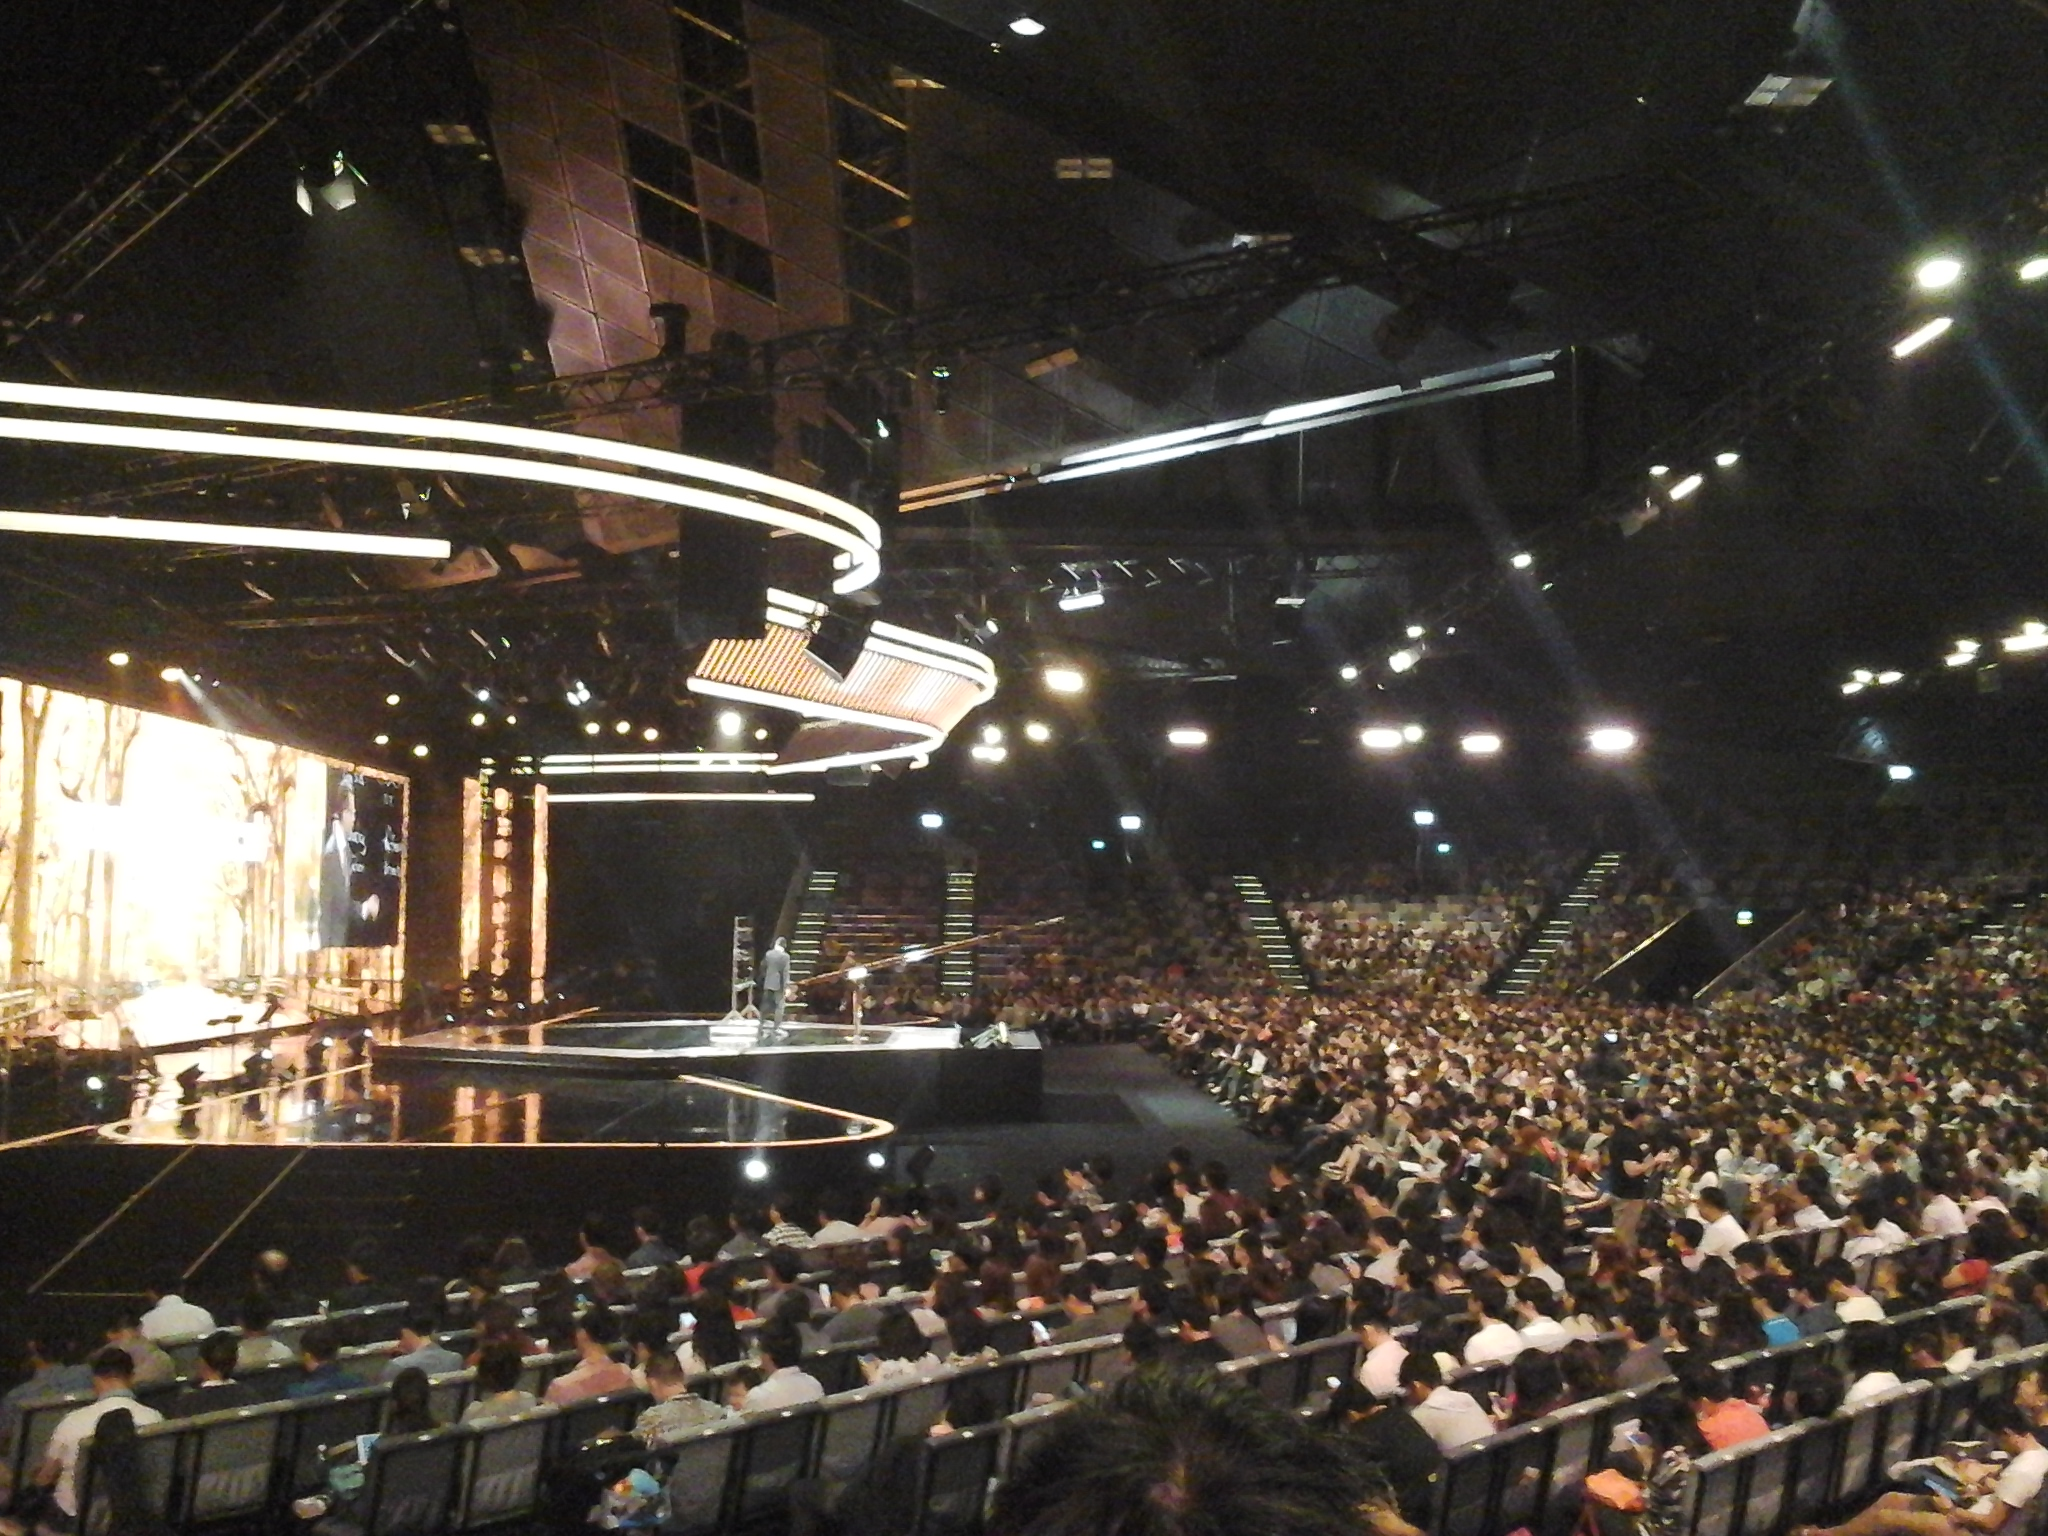 A.R. Bernard preaching at City Harvest Church